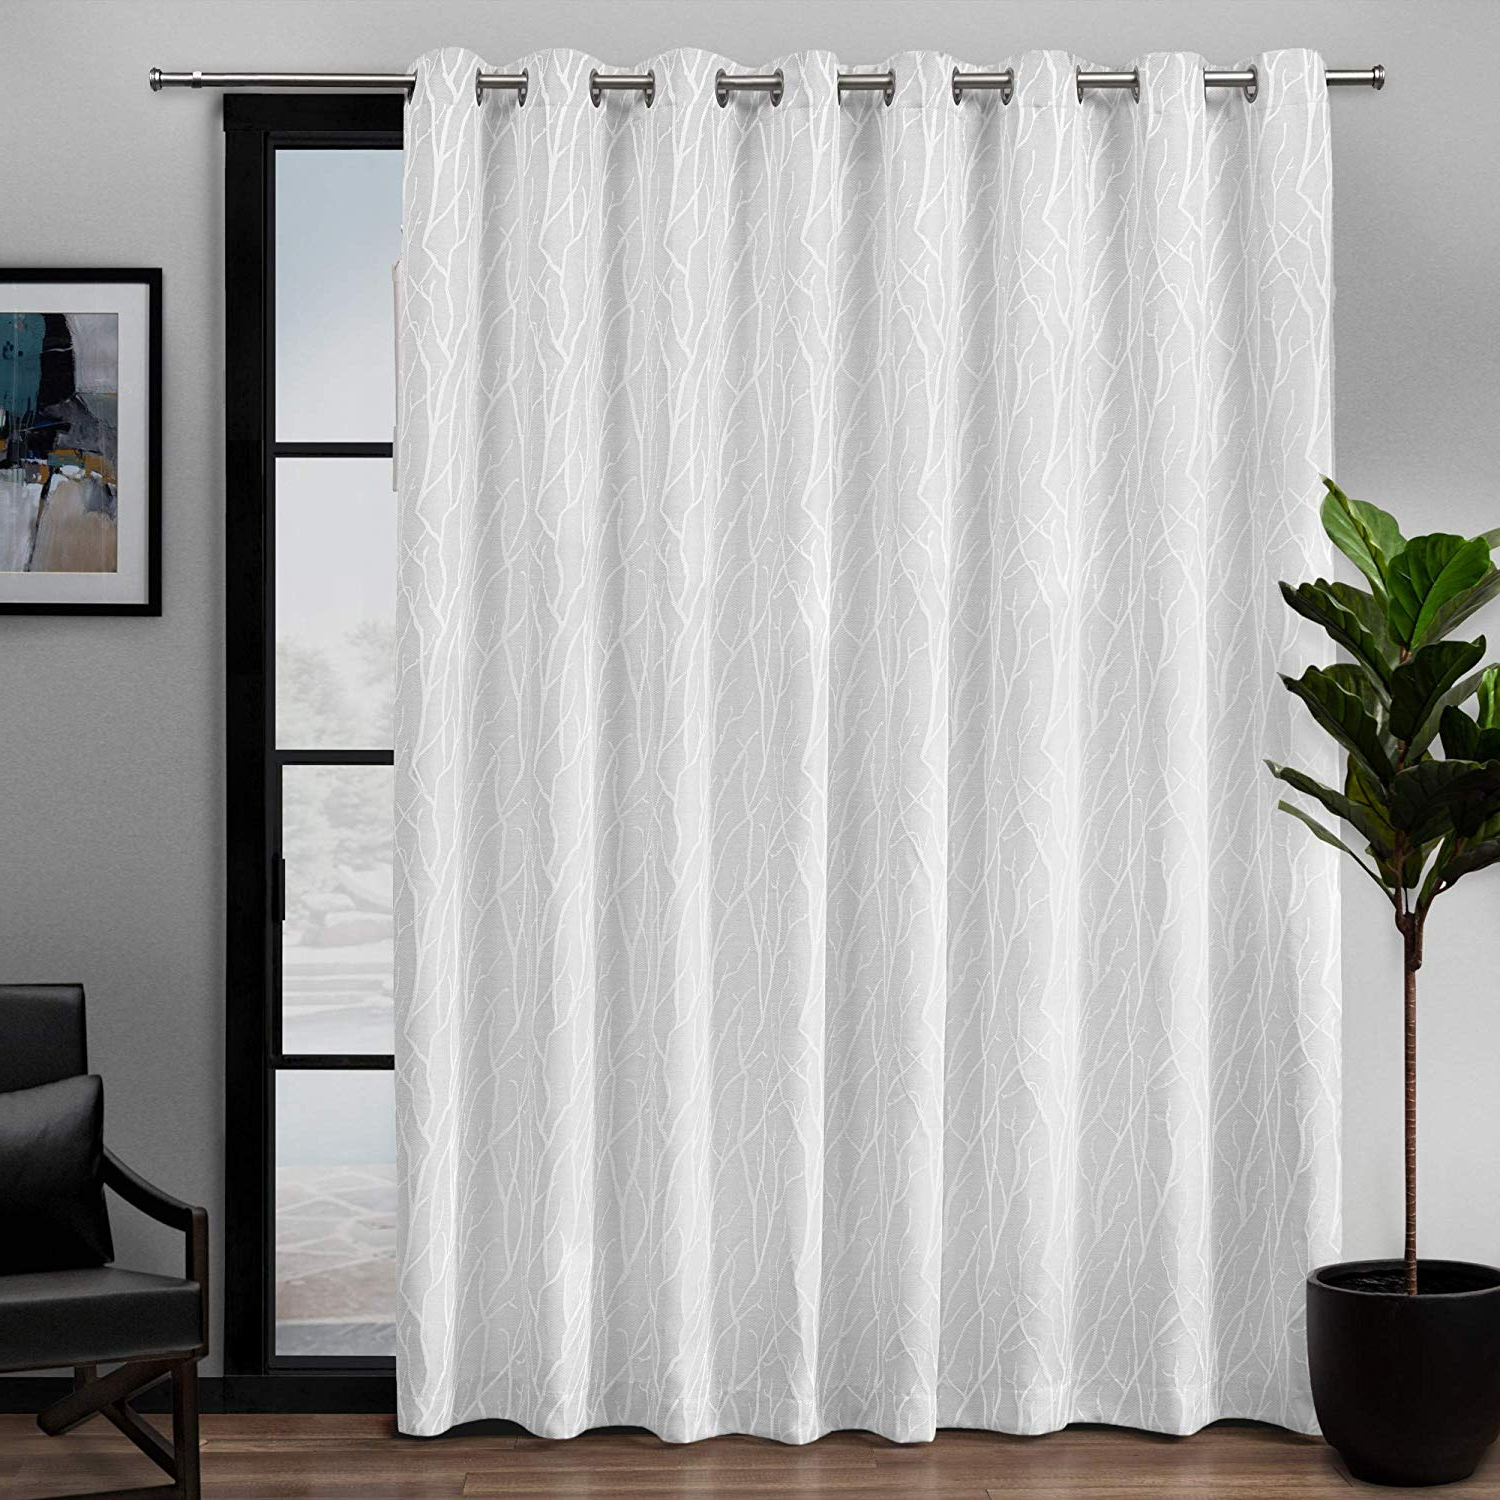 Amazon: Exclusive Home Forest Hill Patio Woven Blackout Regarding Preferred Forest Hill Woven Blackout Grommet Top Curtain Panel Pairs (View 1 of 20)